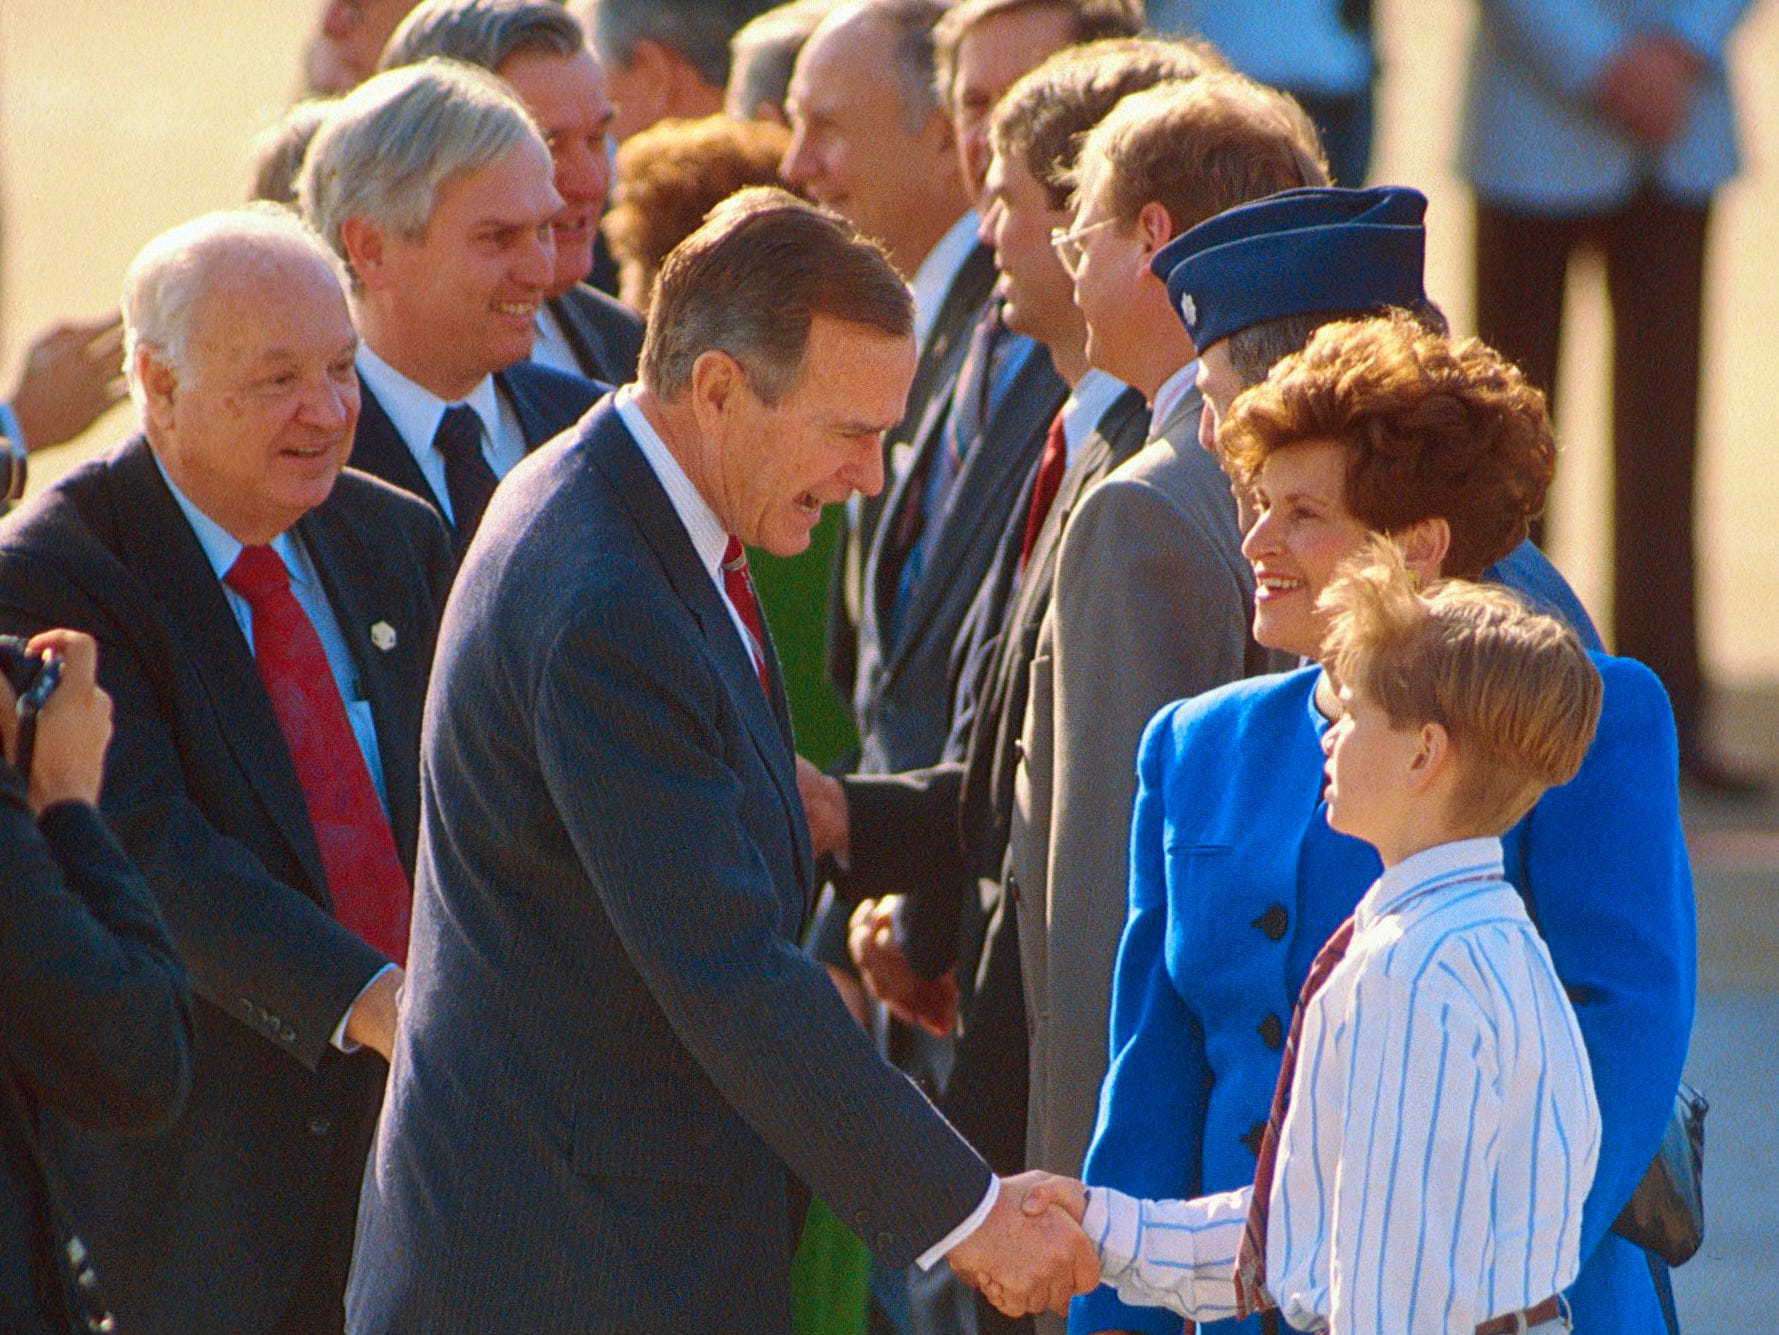 President George H.W. Bush meets John J. Duncan III, son of 2nd District Rep. John J. Duncan Jr., on Feb. 19, 1992, at McGhee Tyson Air National Guard base. Rep. Duncan's wife, Lynn, is with her son. At left are 1st District Rep. Jimmy Quillen and Rep. Duncan. The younger Duncan was elected Knox County Trustee in 2010 and served until 2013.